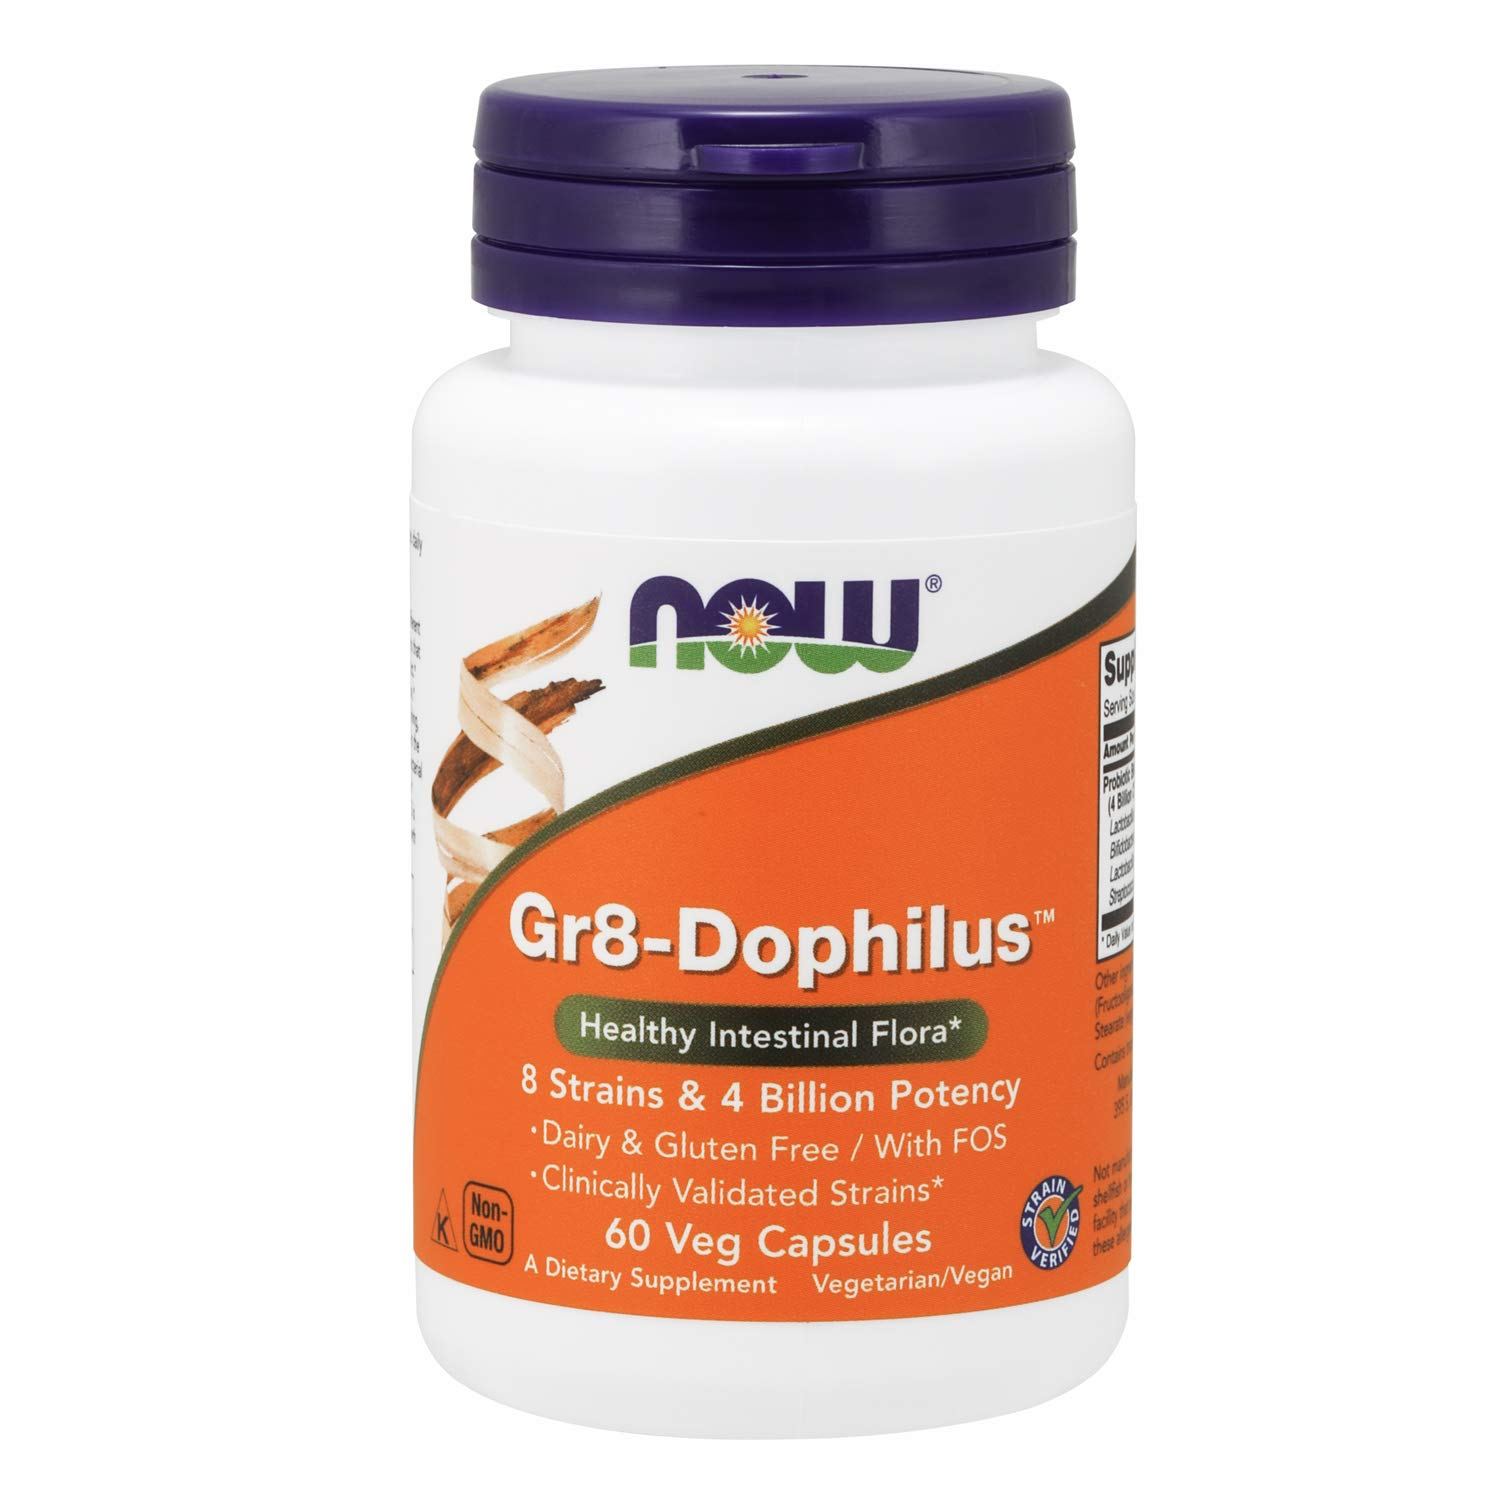 Now Supplements, Gr8-DophilusTMwith 8 Strains & 4 Billion Potency, Shelf Stable, 60 Veg Capsules by NOW Foods